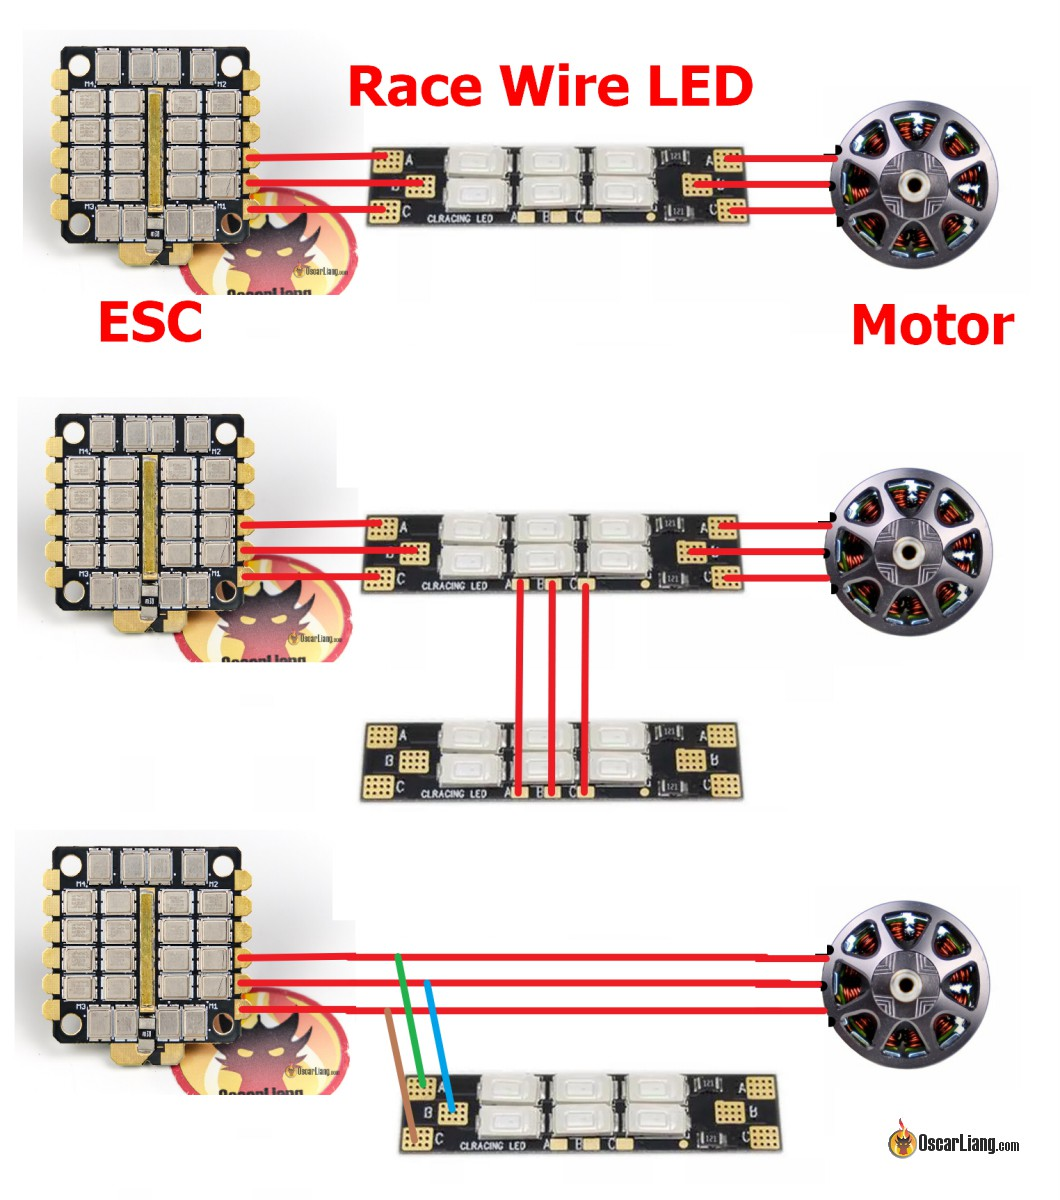 hight resolution of the cool things about these motor wire powered led boards are that you don t need any additional voltage regulators and they are extremely flexible when it